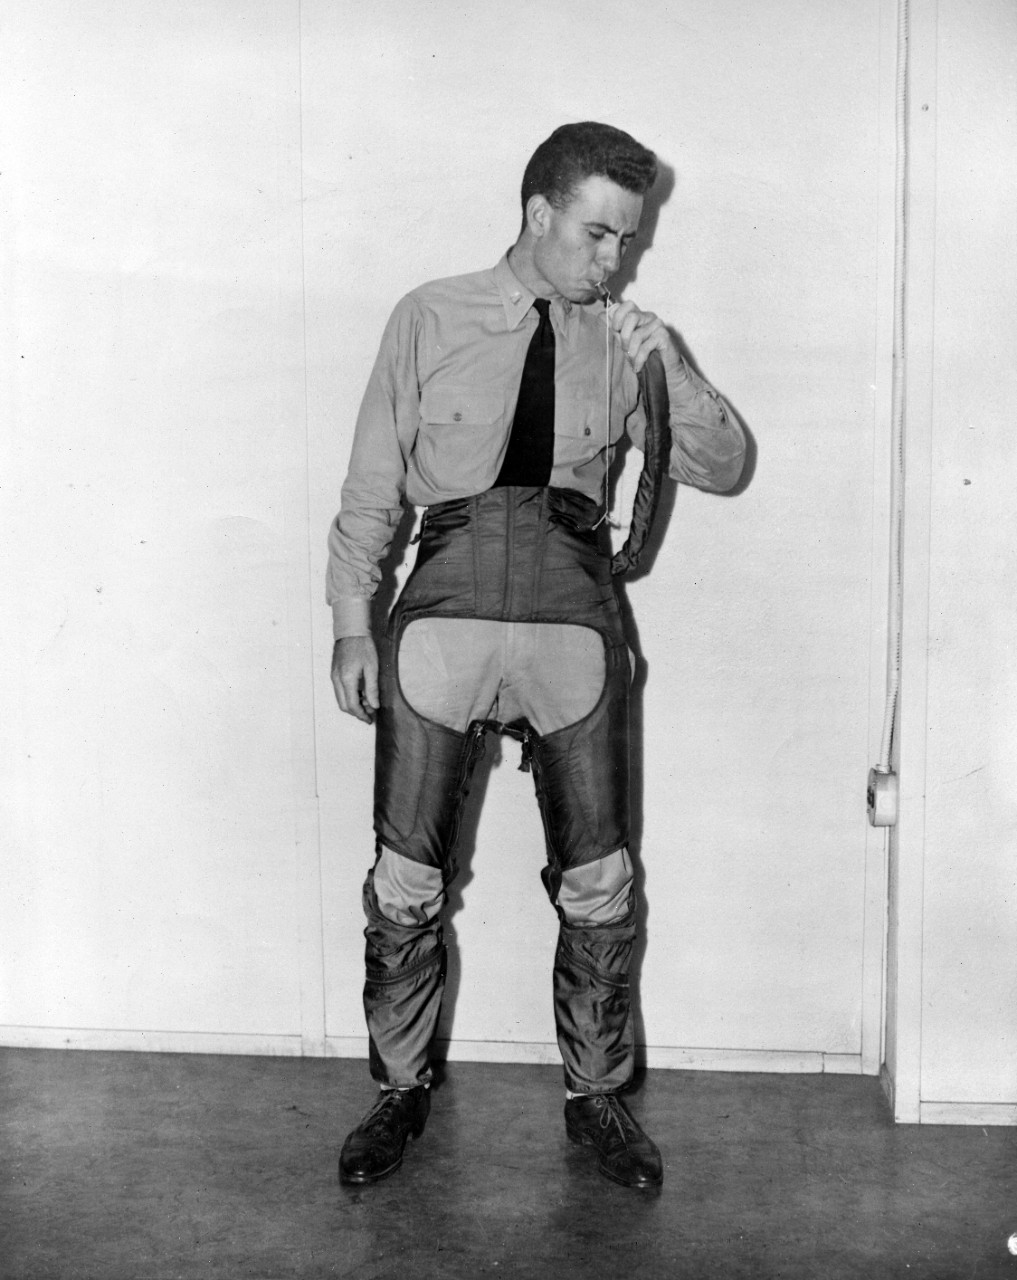 Collection of 20 images related to the naval career of LT Robert Draper Hill. Photos show Hill in various poses modeling the features of the Anti-G suit pants worn by aviators to withstand high g loads during flight. There is also a portrait of Hill in a pilot's leather jacket and uniform. The collection also consists of several official photos from the early 1940s related to aviator training and aircraft, including the N3N (an American tandem-seat, tandem-seat, open cockpit, primary training biplane) at the Naval Air Station Sqantum, MA., as well as several crashes of N2S models at Naval Air Station Memphis, TN. There is a single photograph taken on Johnston Island (Atoll) June, 26, 1944, of the eight men stationed at Zero Tower at the runway. LT Hill was the officer in charge, according to the caption on the reverse of the image.